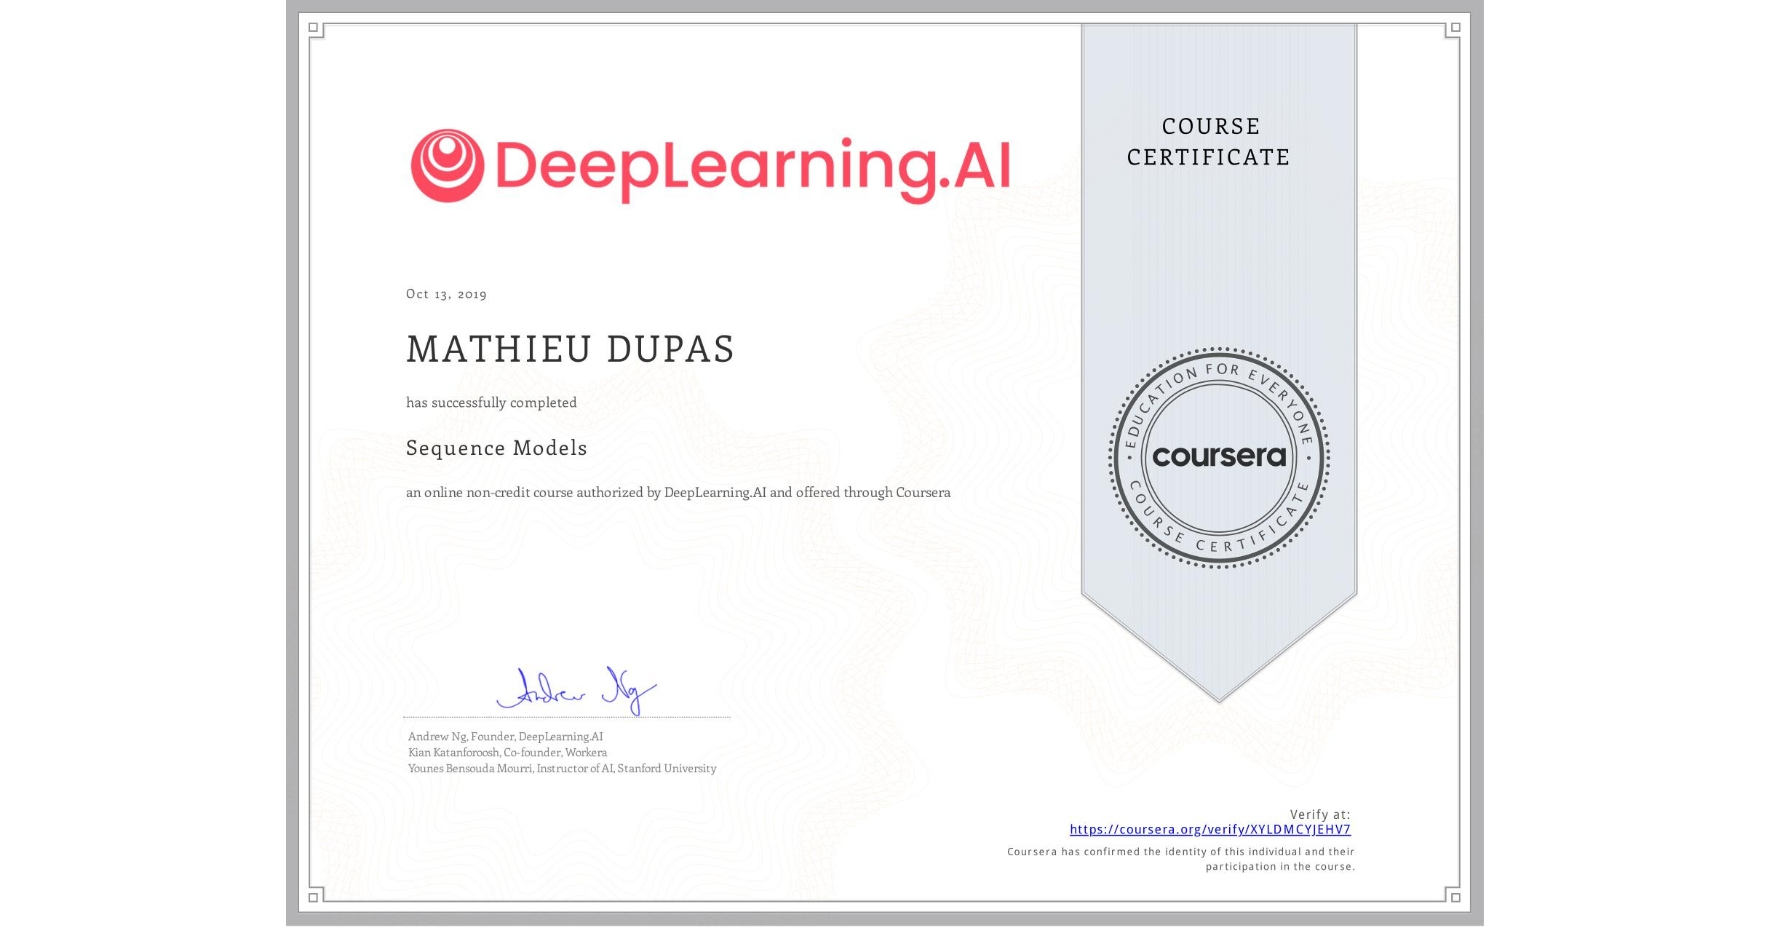 View certificate for MATHIEU DUPAS, Sequence Models, an online non-credit course authorized by DeepLearning.AI and offered through Coursera